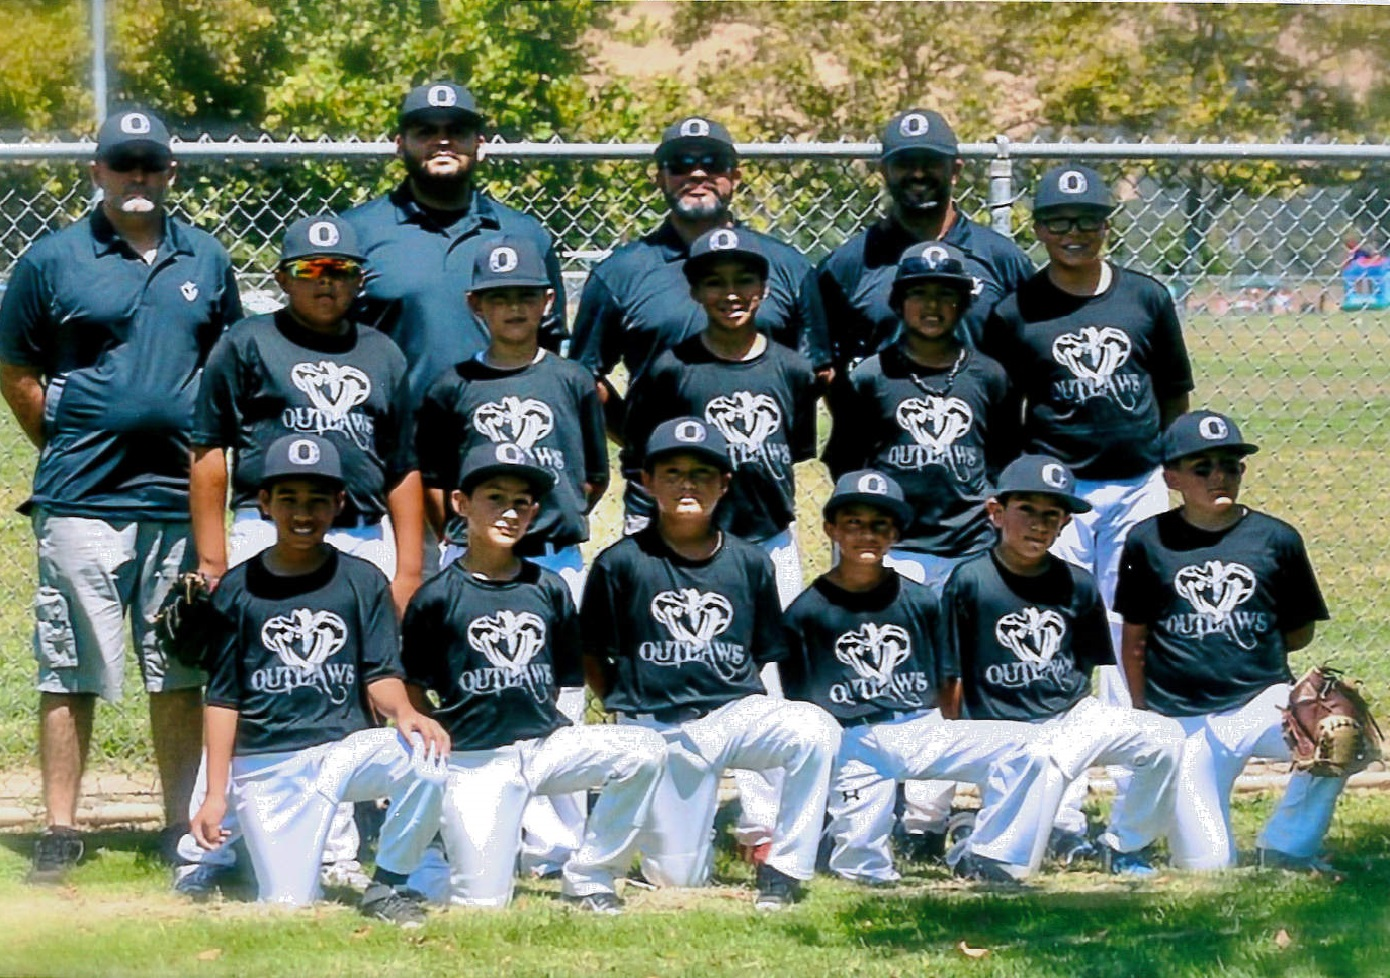 East Bay Outlaws Baseball Team